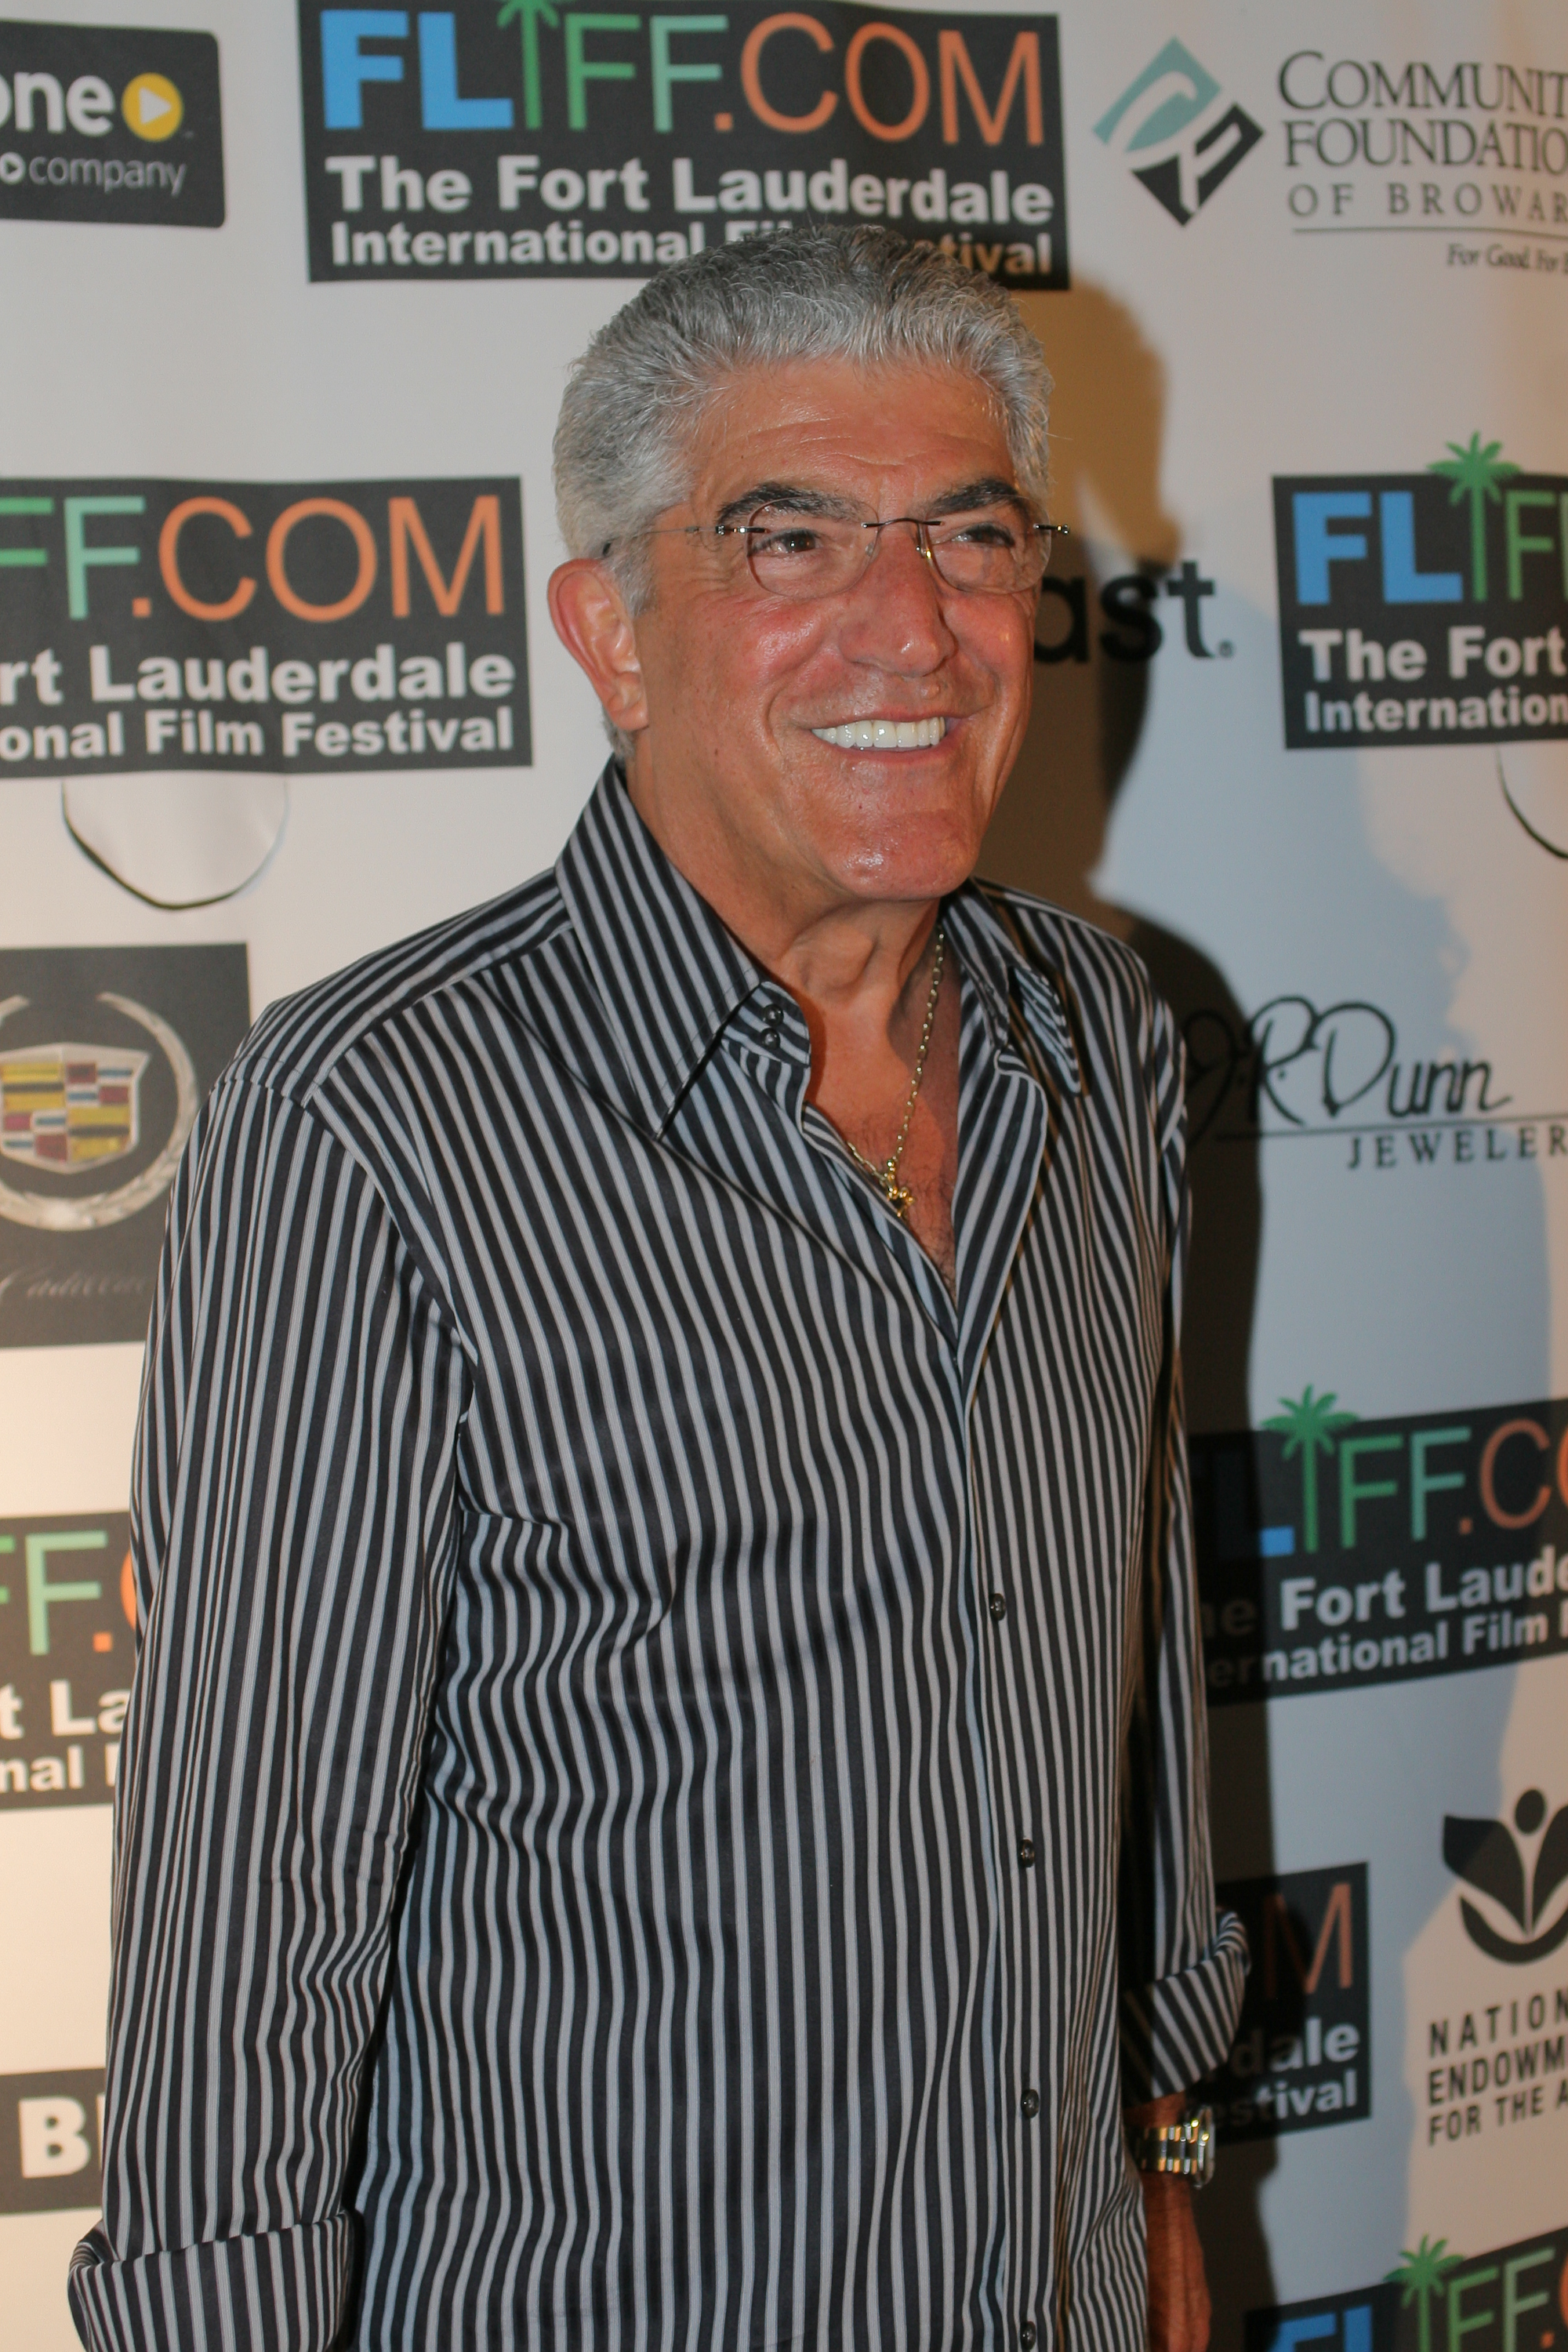 Frank Vincent                  The 24th Annual Fort Lauderdale International Film Festival (FLIFF) - 'Chicago Overcoat' at held at Cinema Paradiso in Fort Lauderdale - Red Carpet                                    Featuring: Frank Vincent                  Where: Florida, United States                  When: 30 Oct 2009                  Credit: WENN